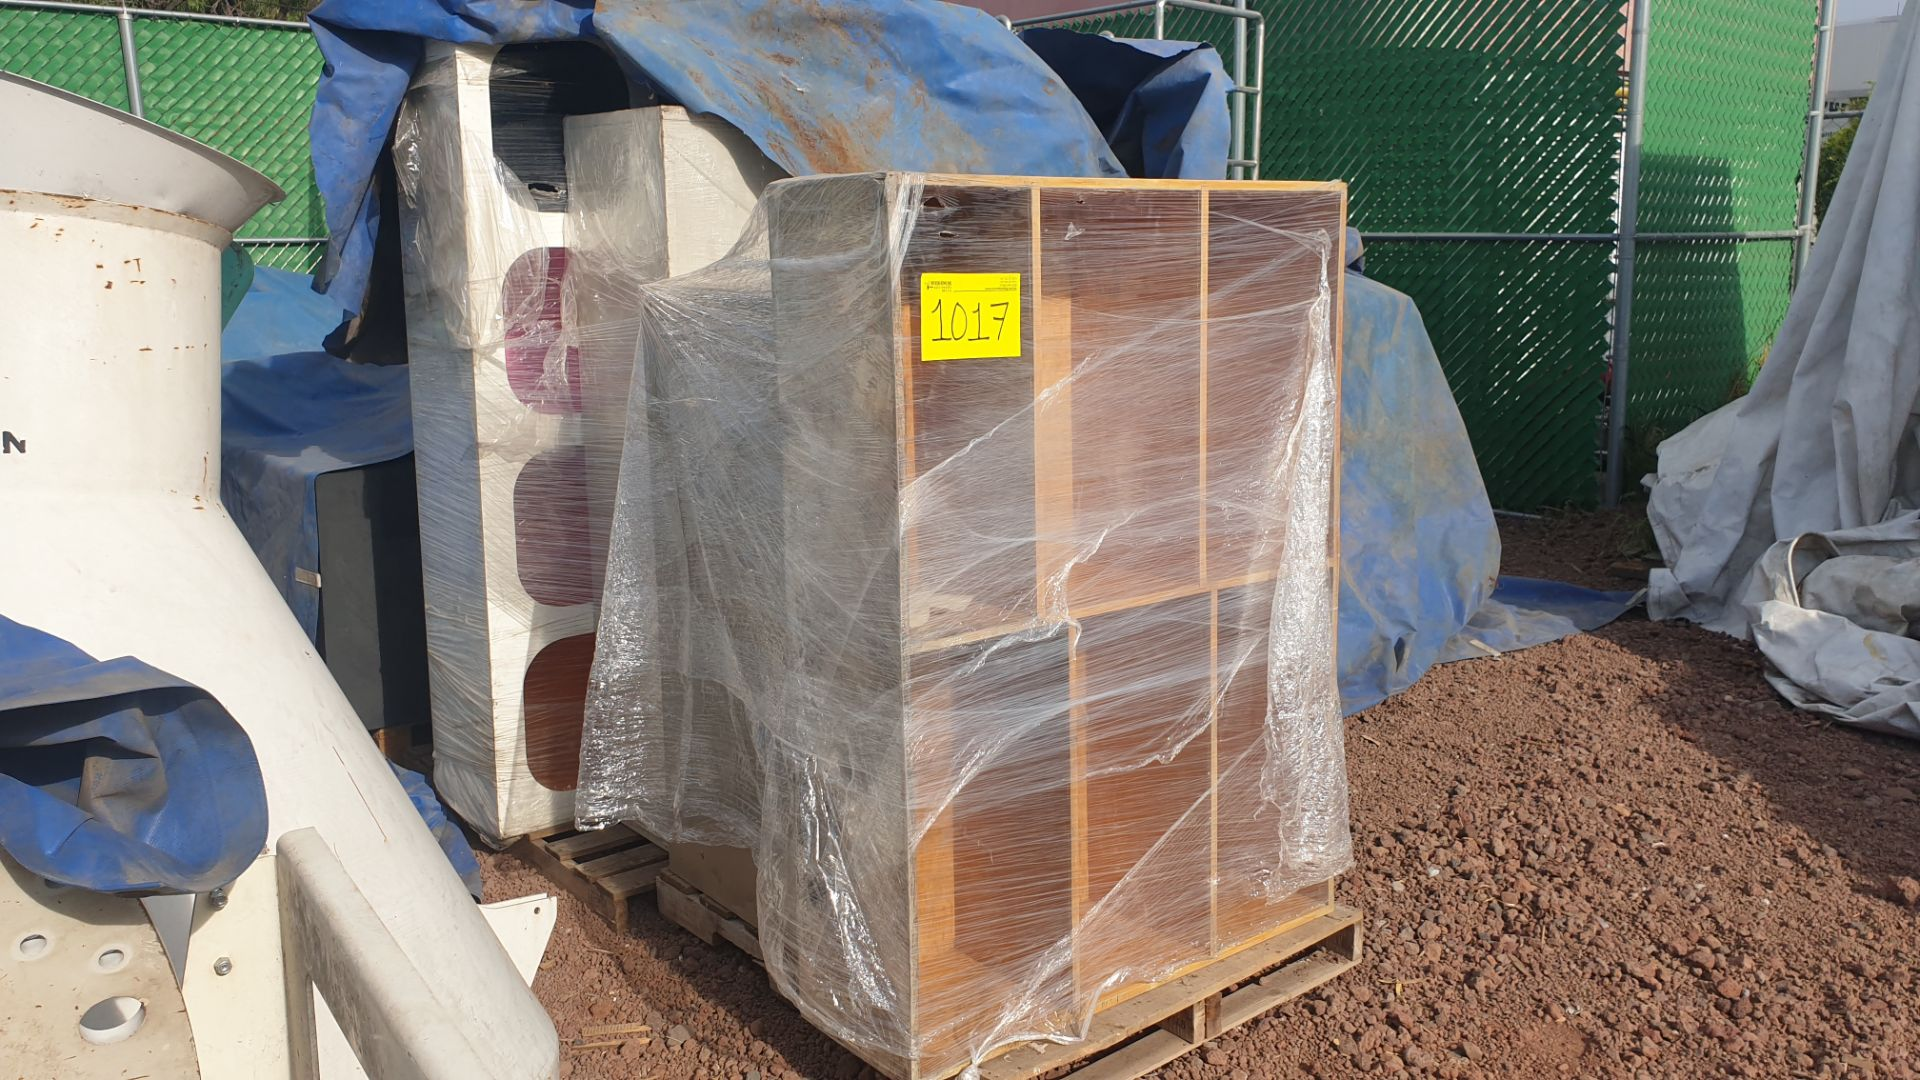 1 Lot of office furniture, includes bookcase, metal file cabinets. Please inspect - Image 4 of 12